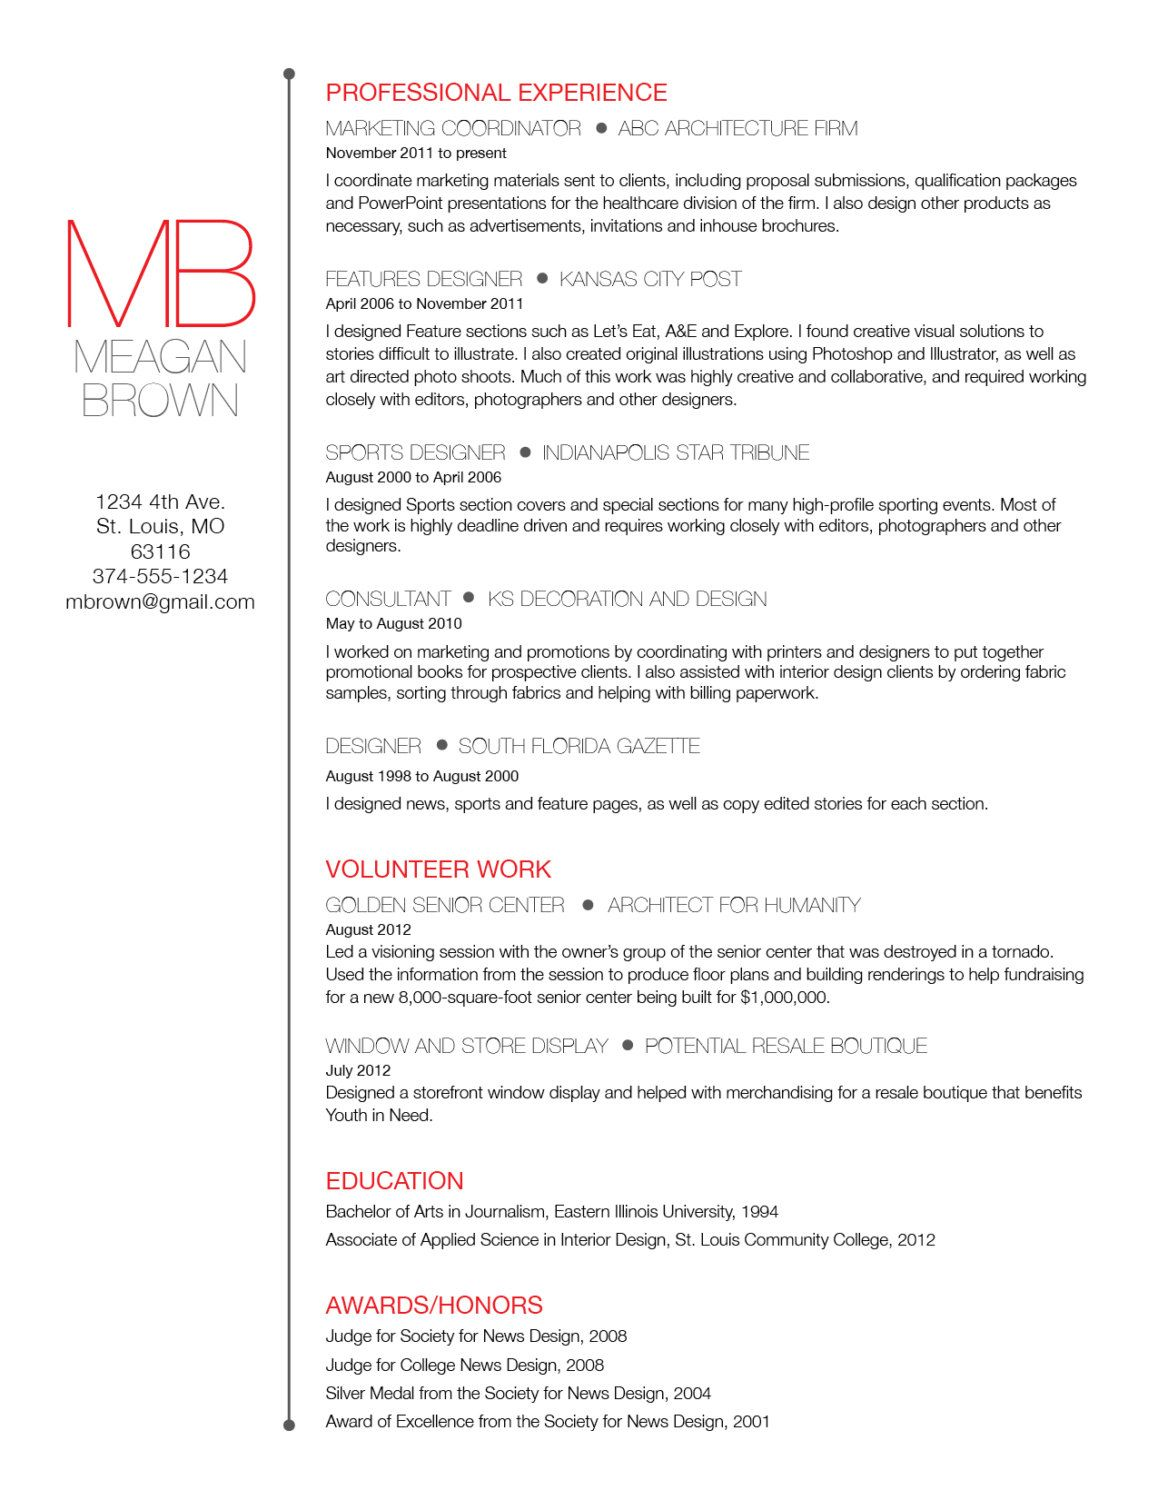 Custom Resume And Cover Letter Template   Big Initials. $45.00, Via Etsy.